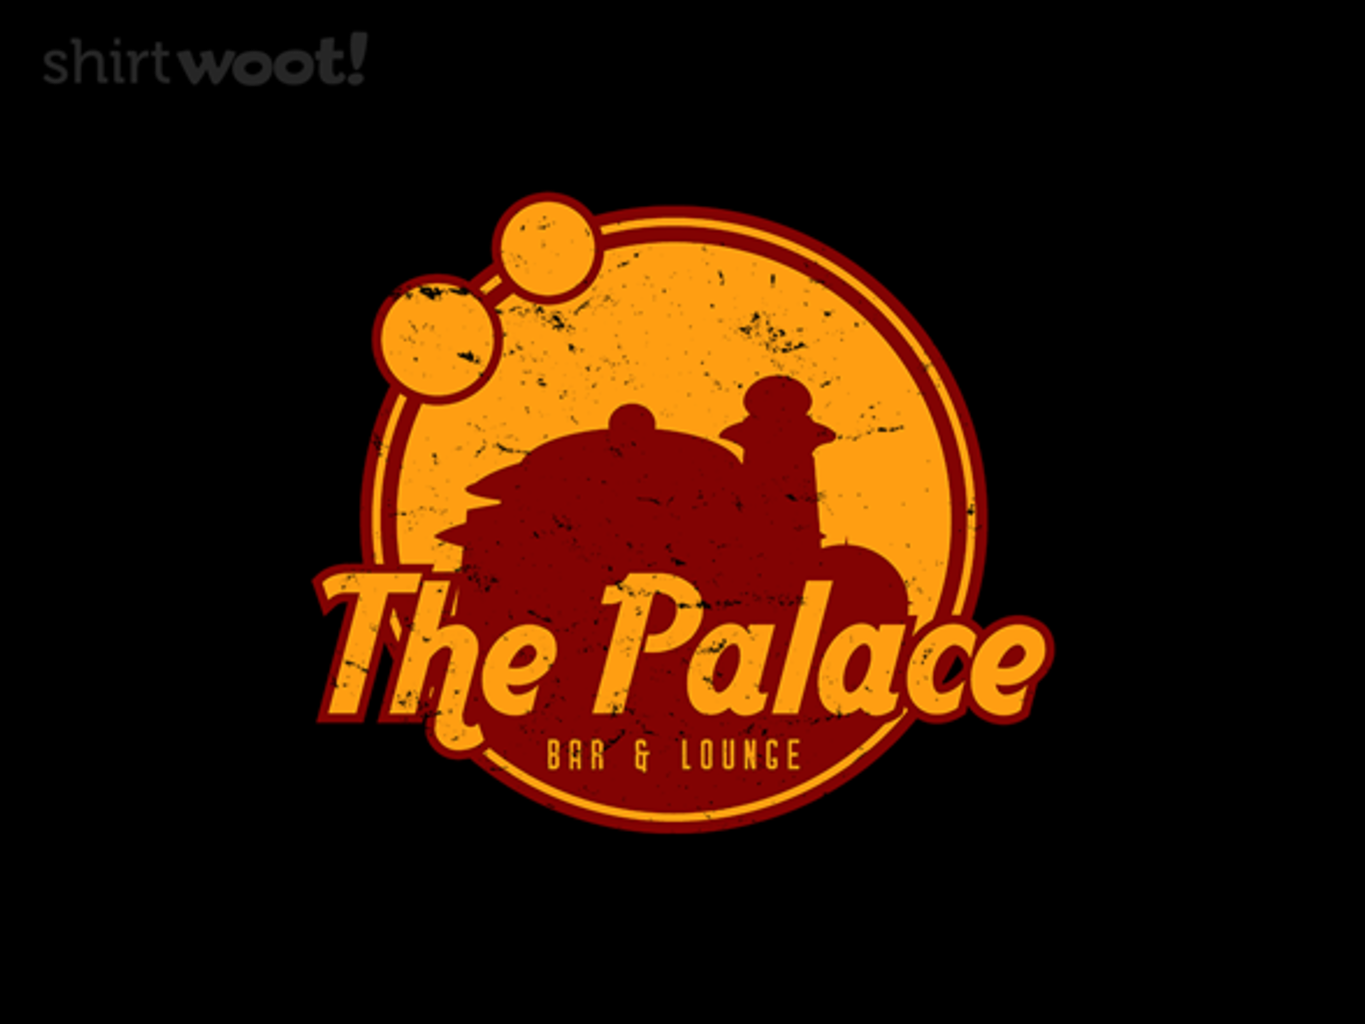 Woot!: Shady Palace